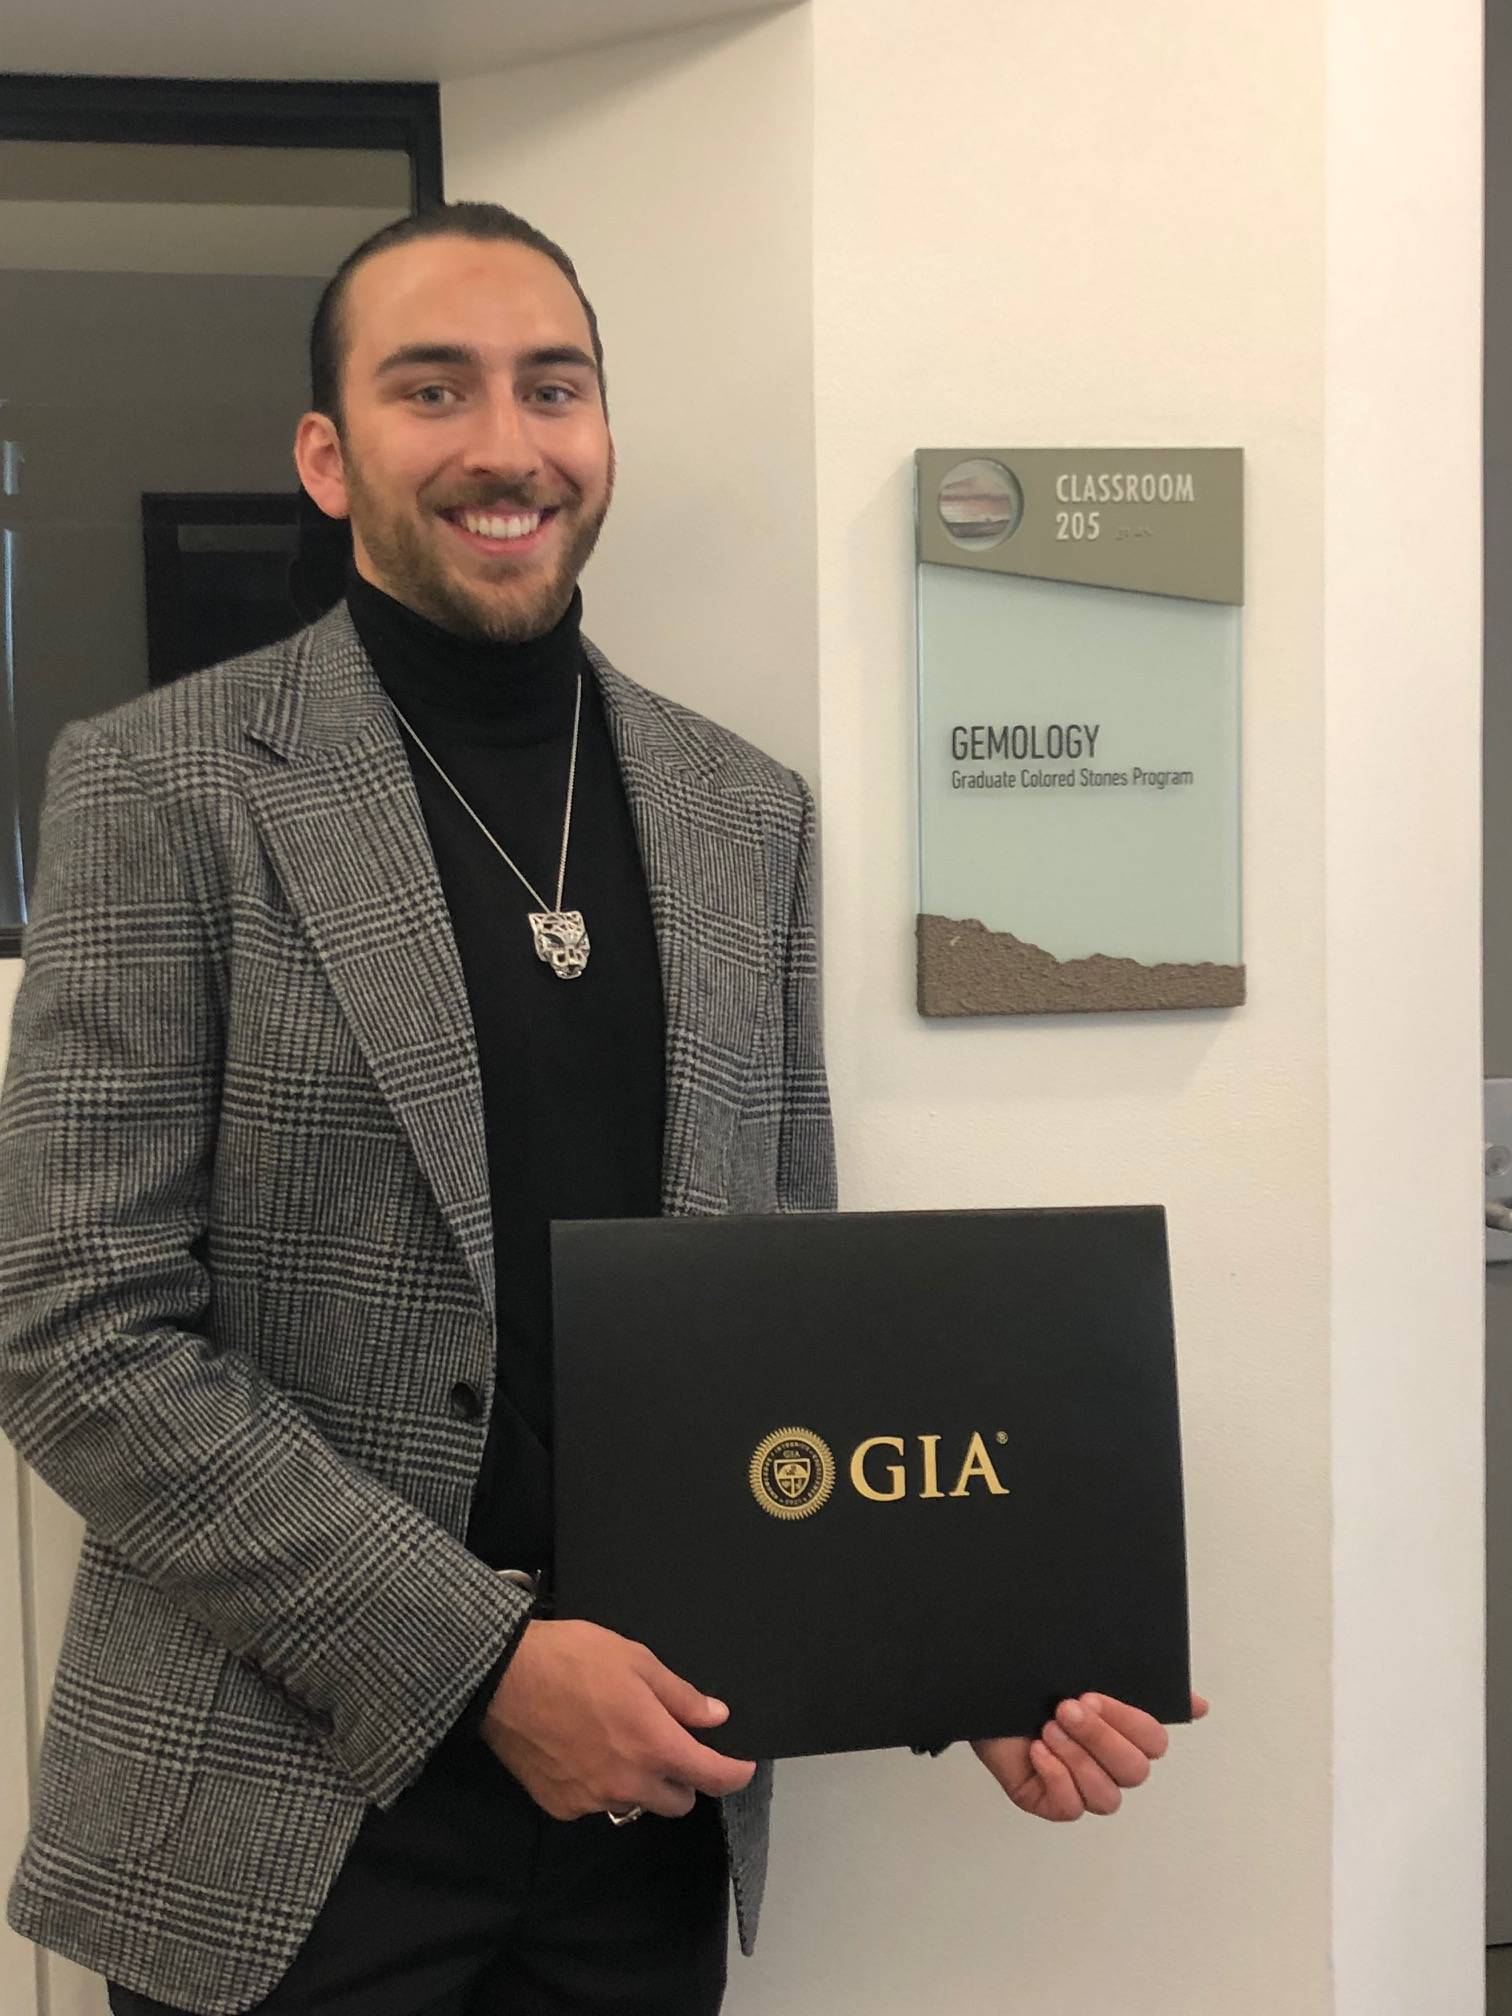 AJ with his GIA certification